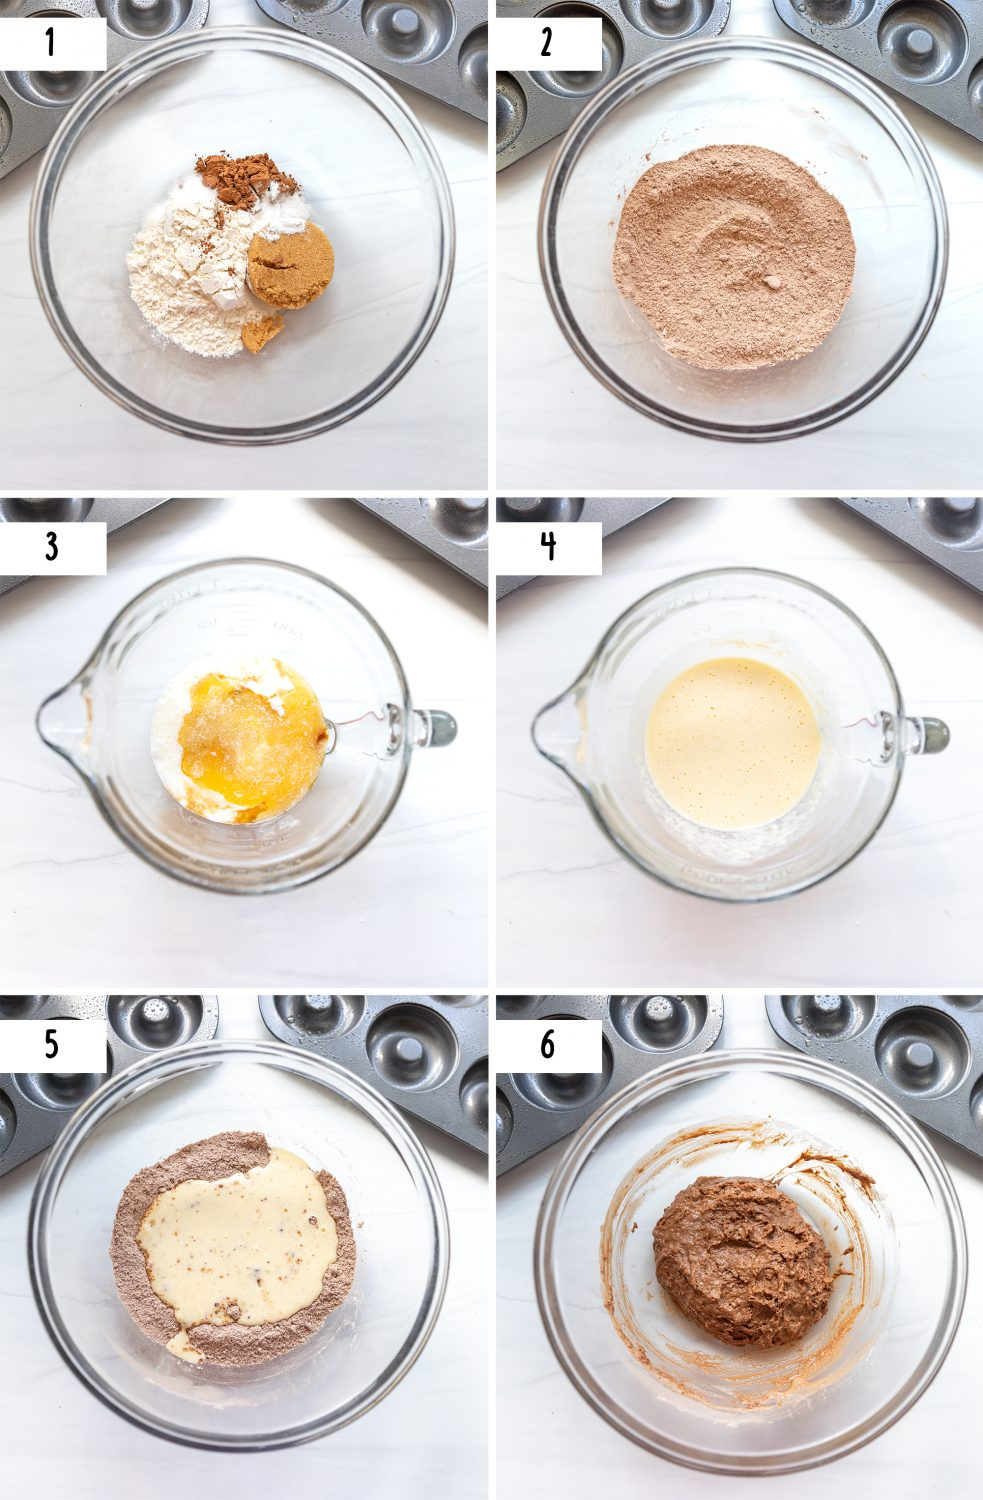 steps to make donuts